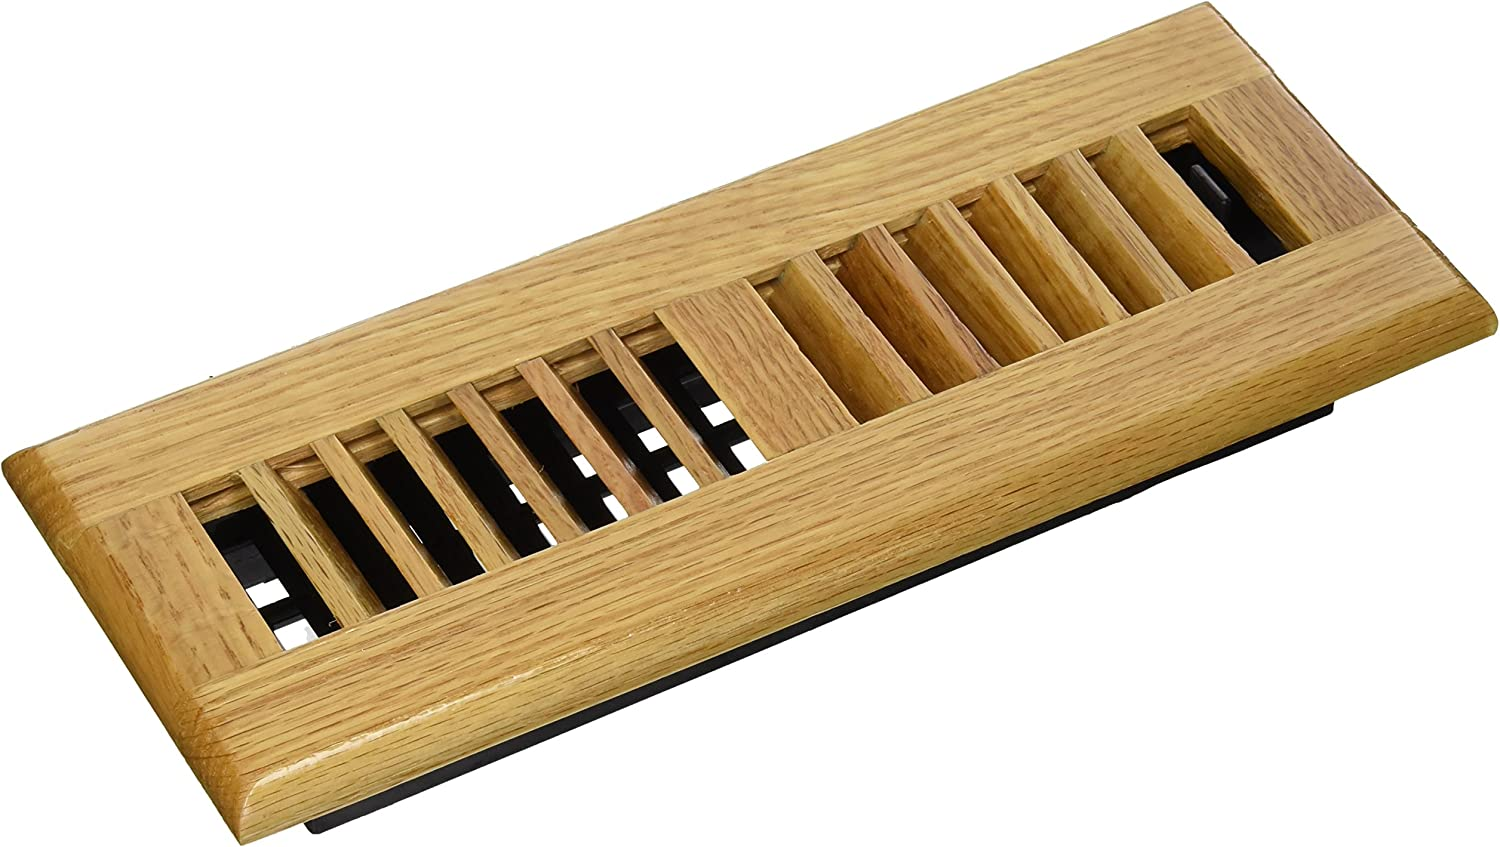 Decor Grates WL310-N Wood Louver Floor Register, Natural Oak, 3-Inch by 10-Inch